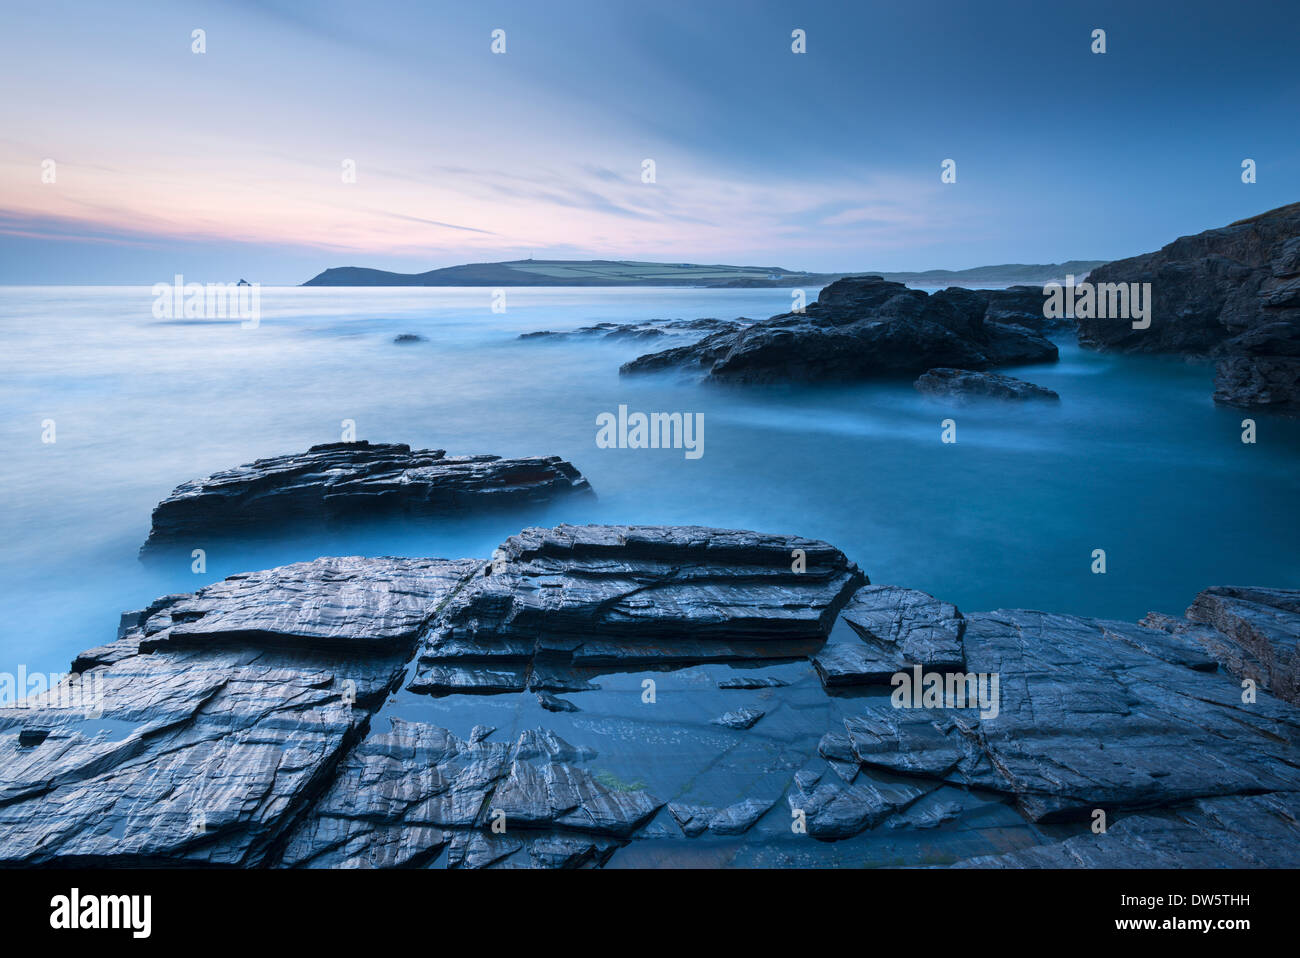 Trevose Head at dusk from Treyarnon Point, North Cornwall, England. Summer (June) 2013. - Stock Image